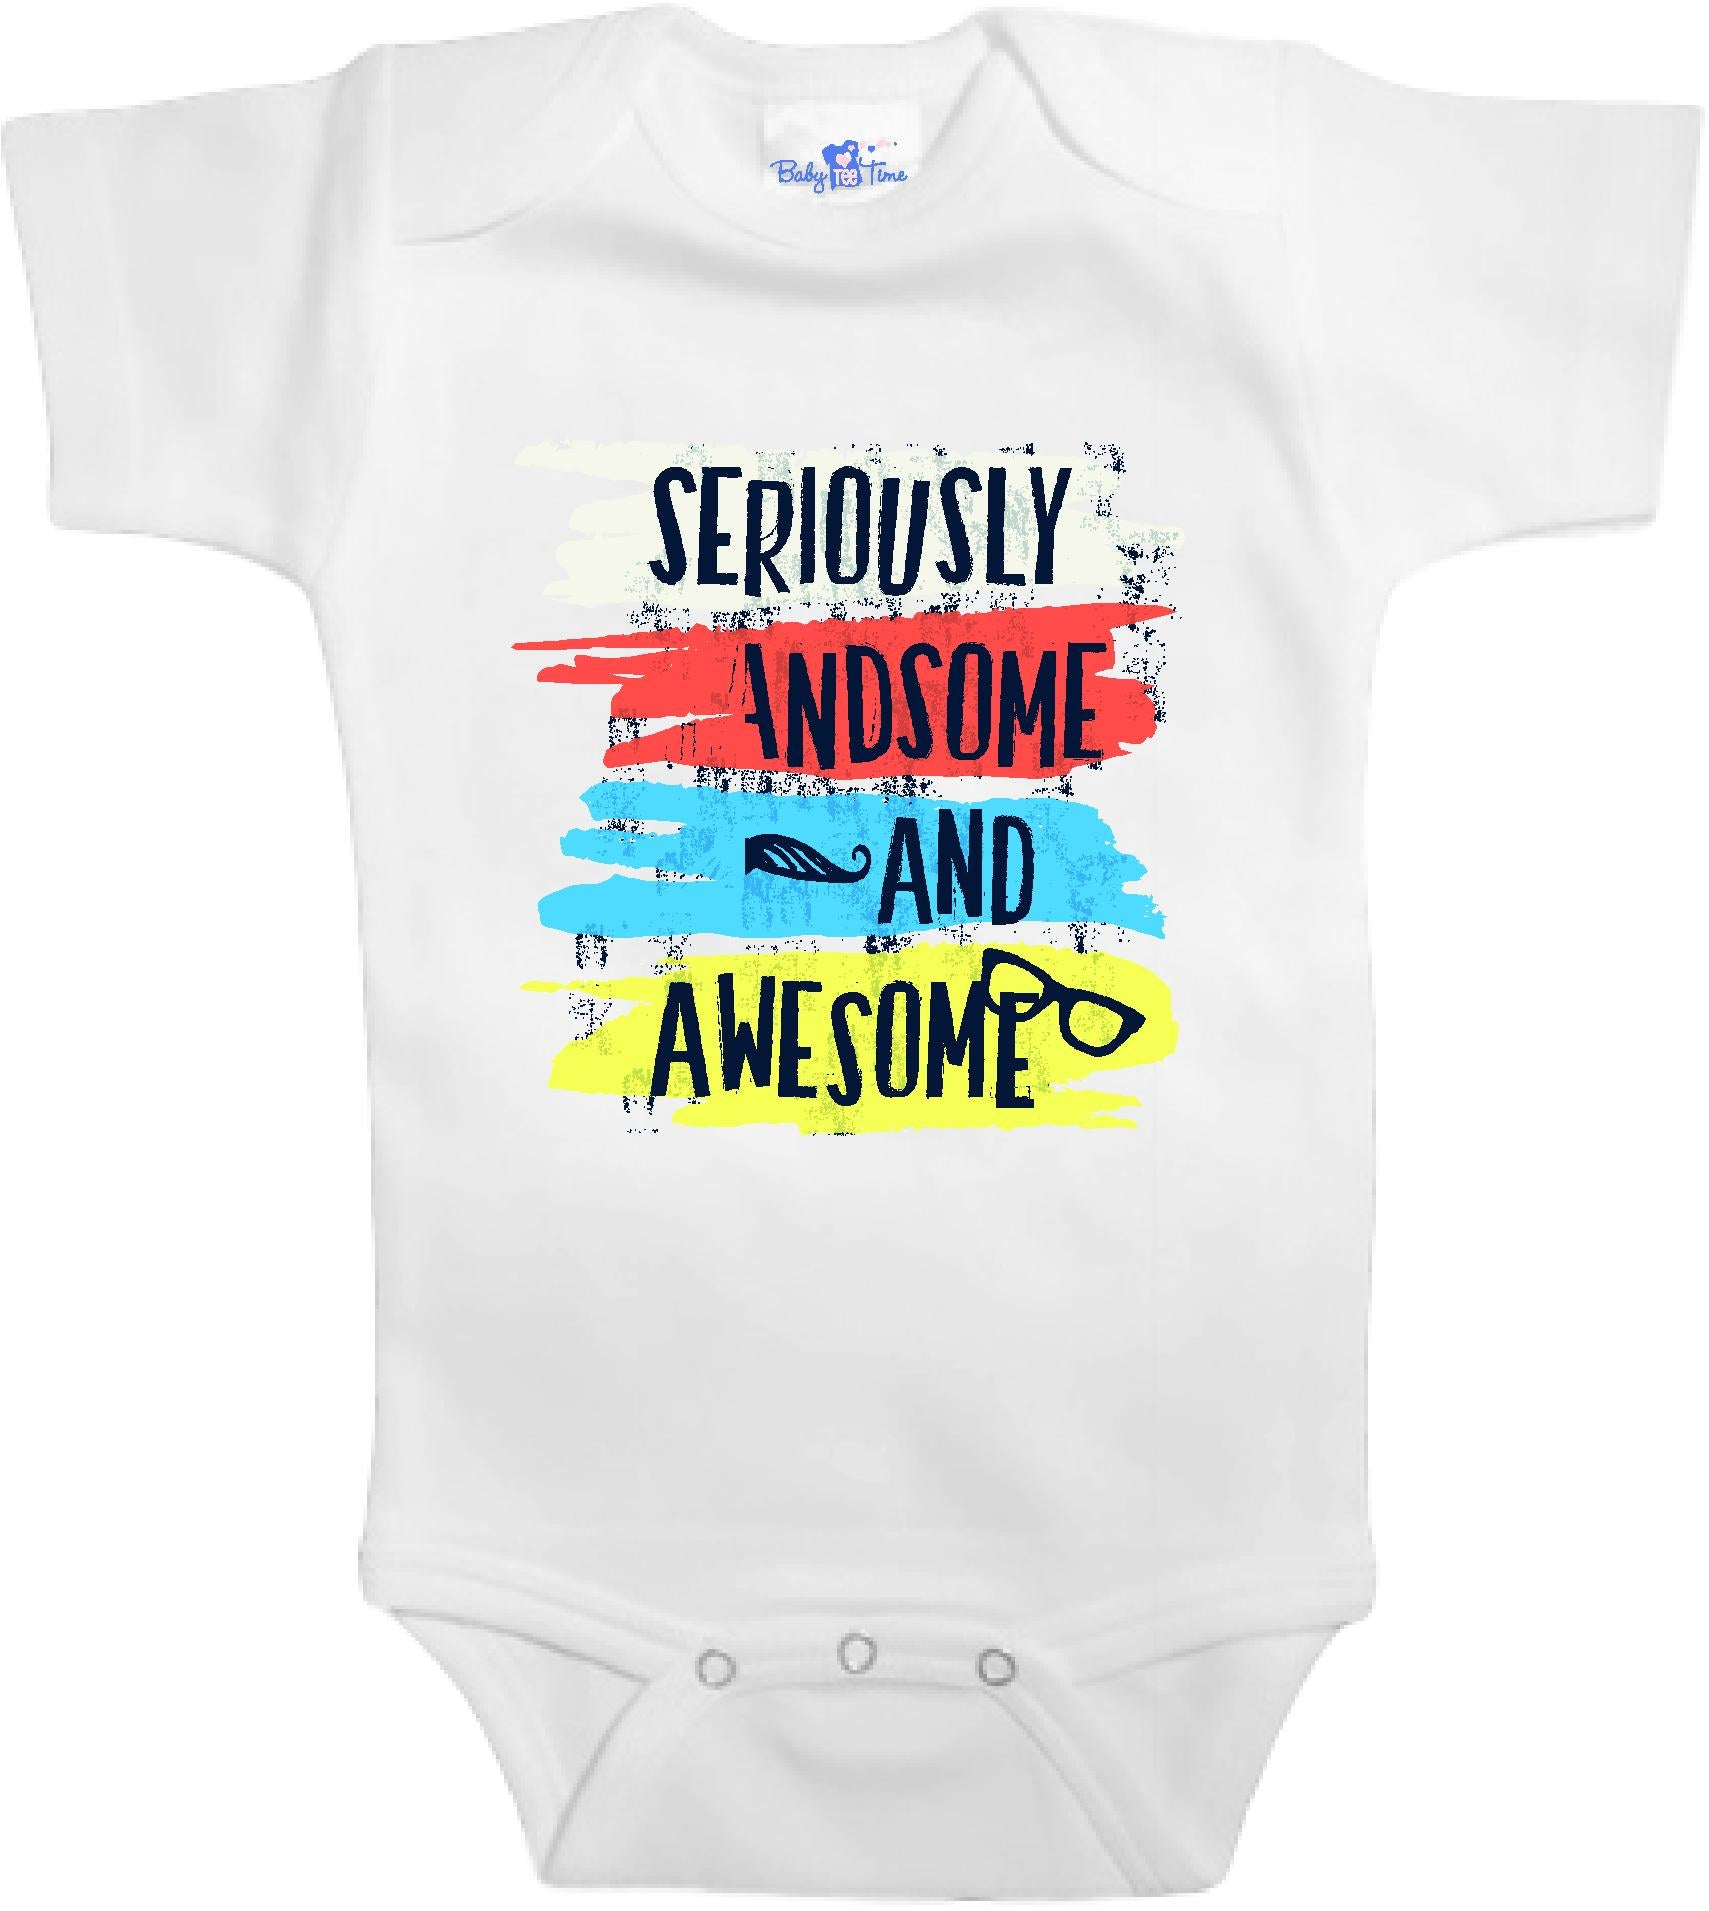 Adorable Baby Tee Time Seriously awesome and handsome popular Baby e